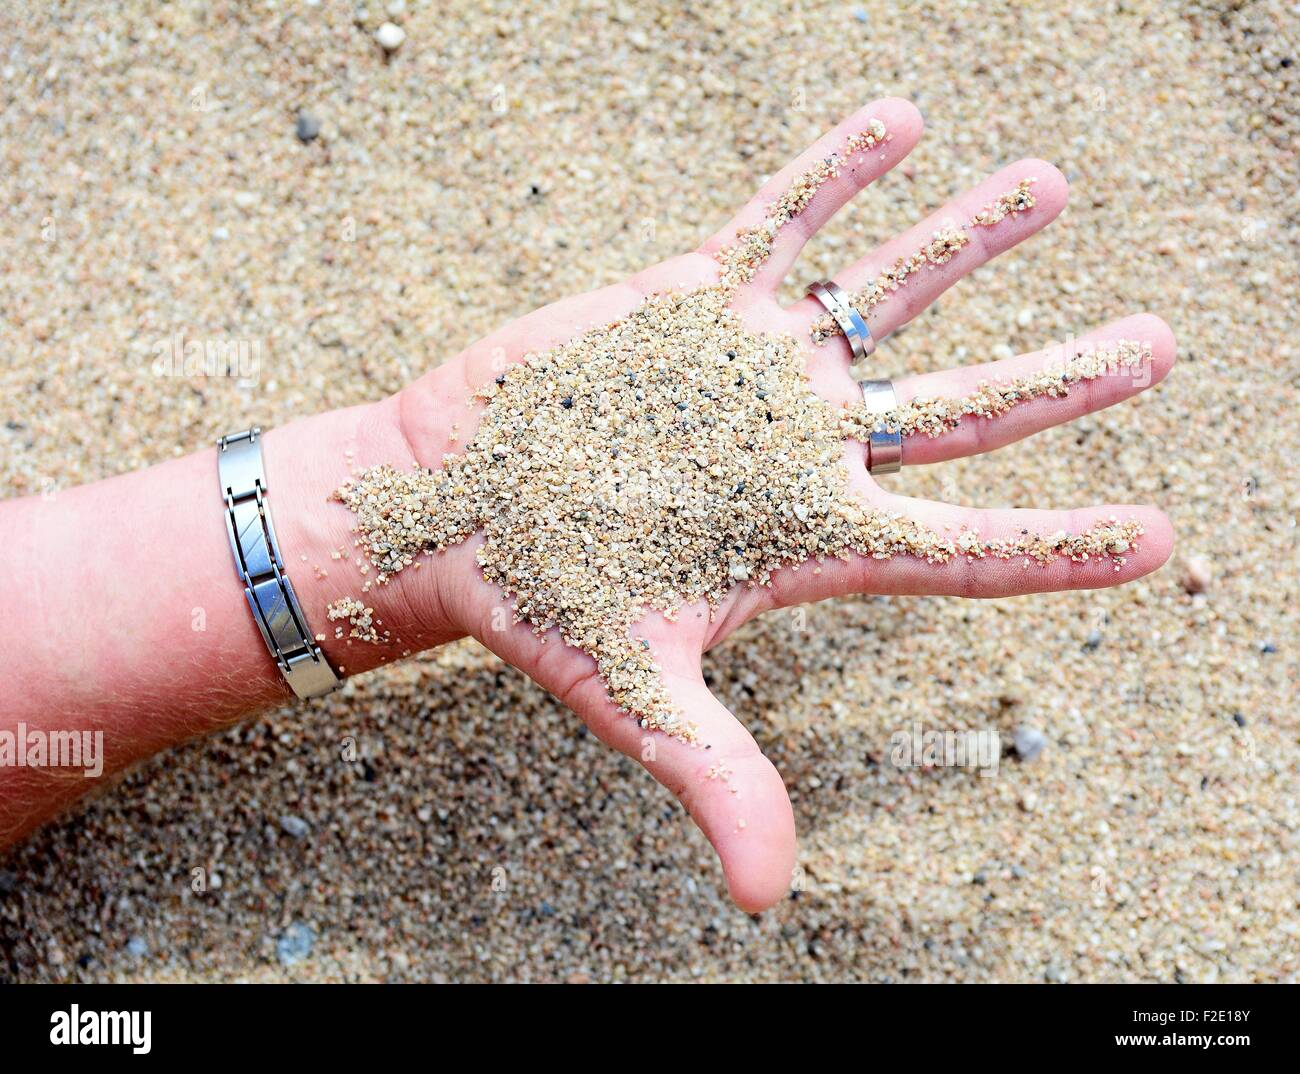 Conceptual shot of the sand in the palm of men's hand. - Stock Image